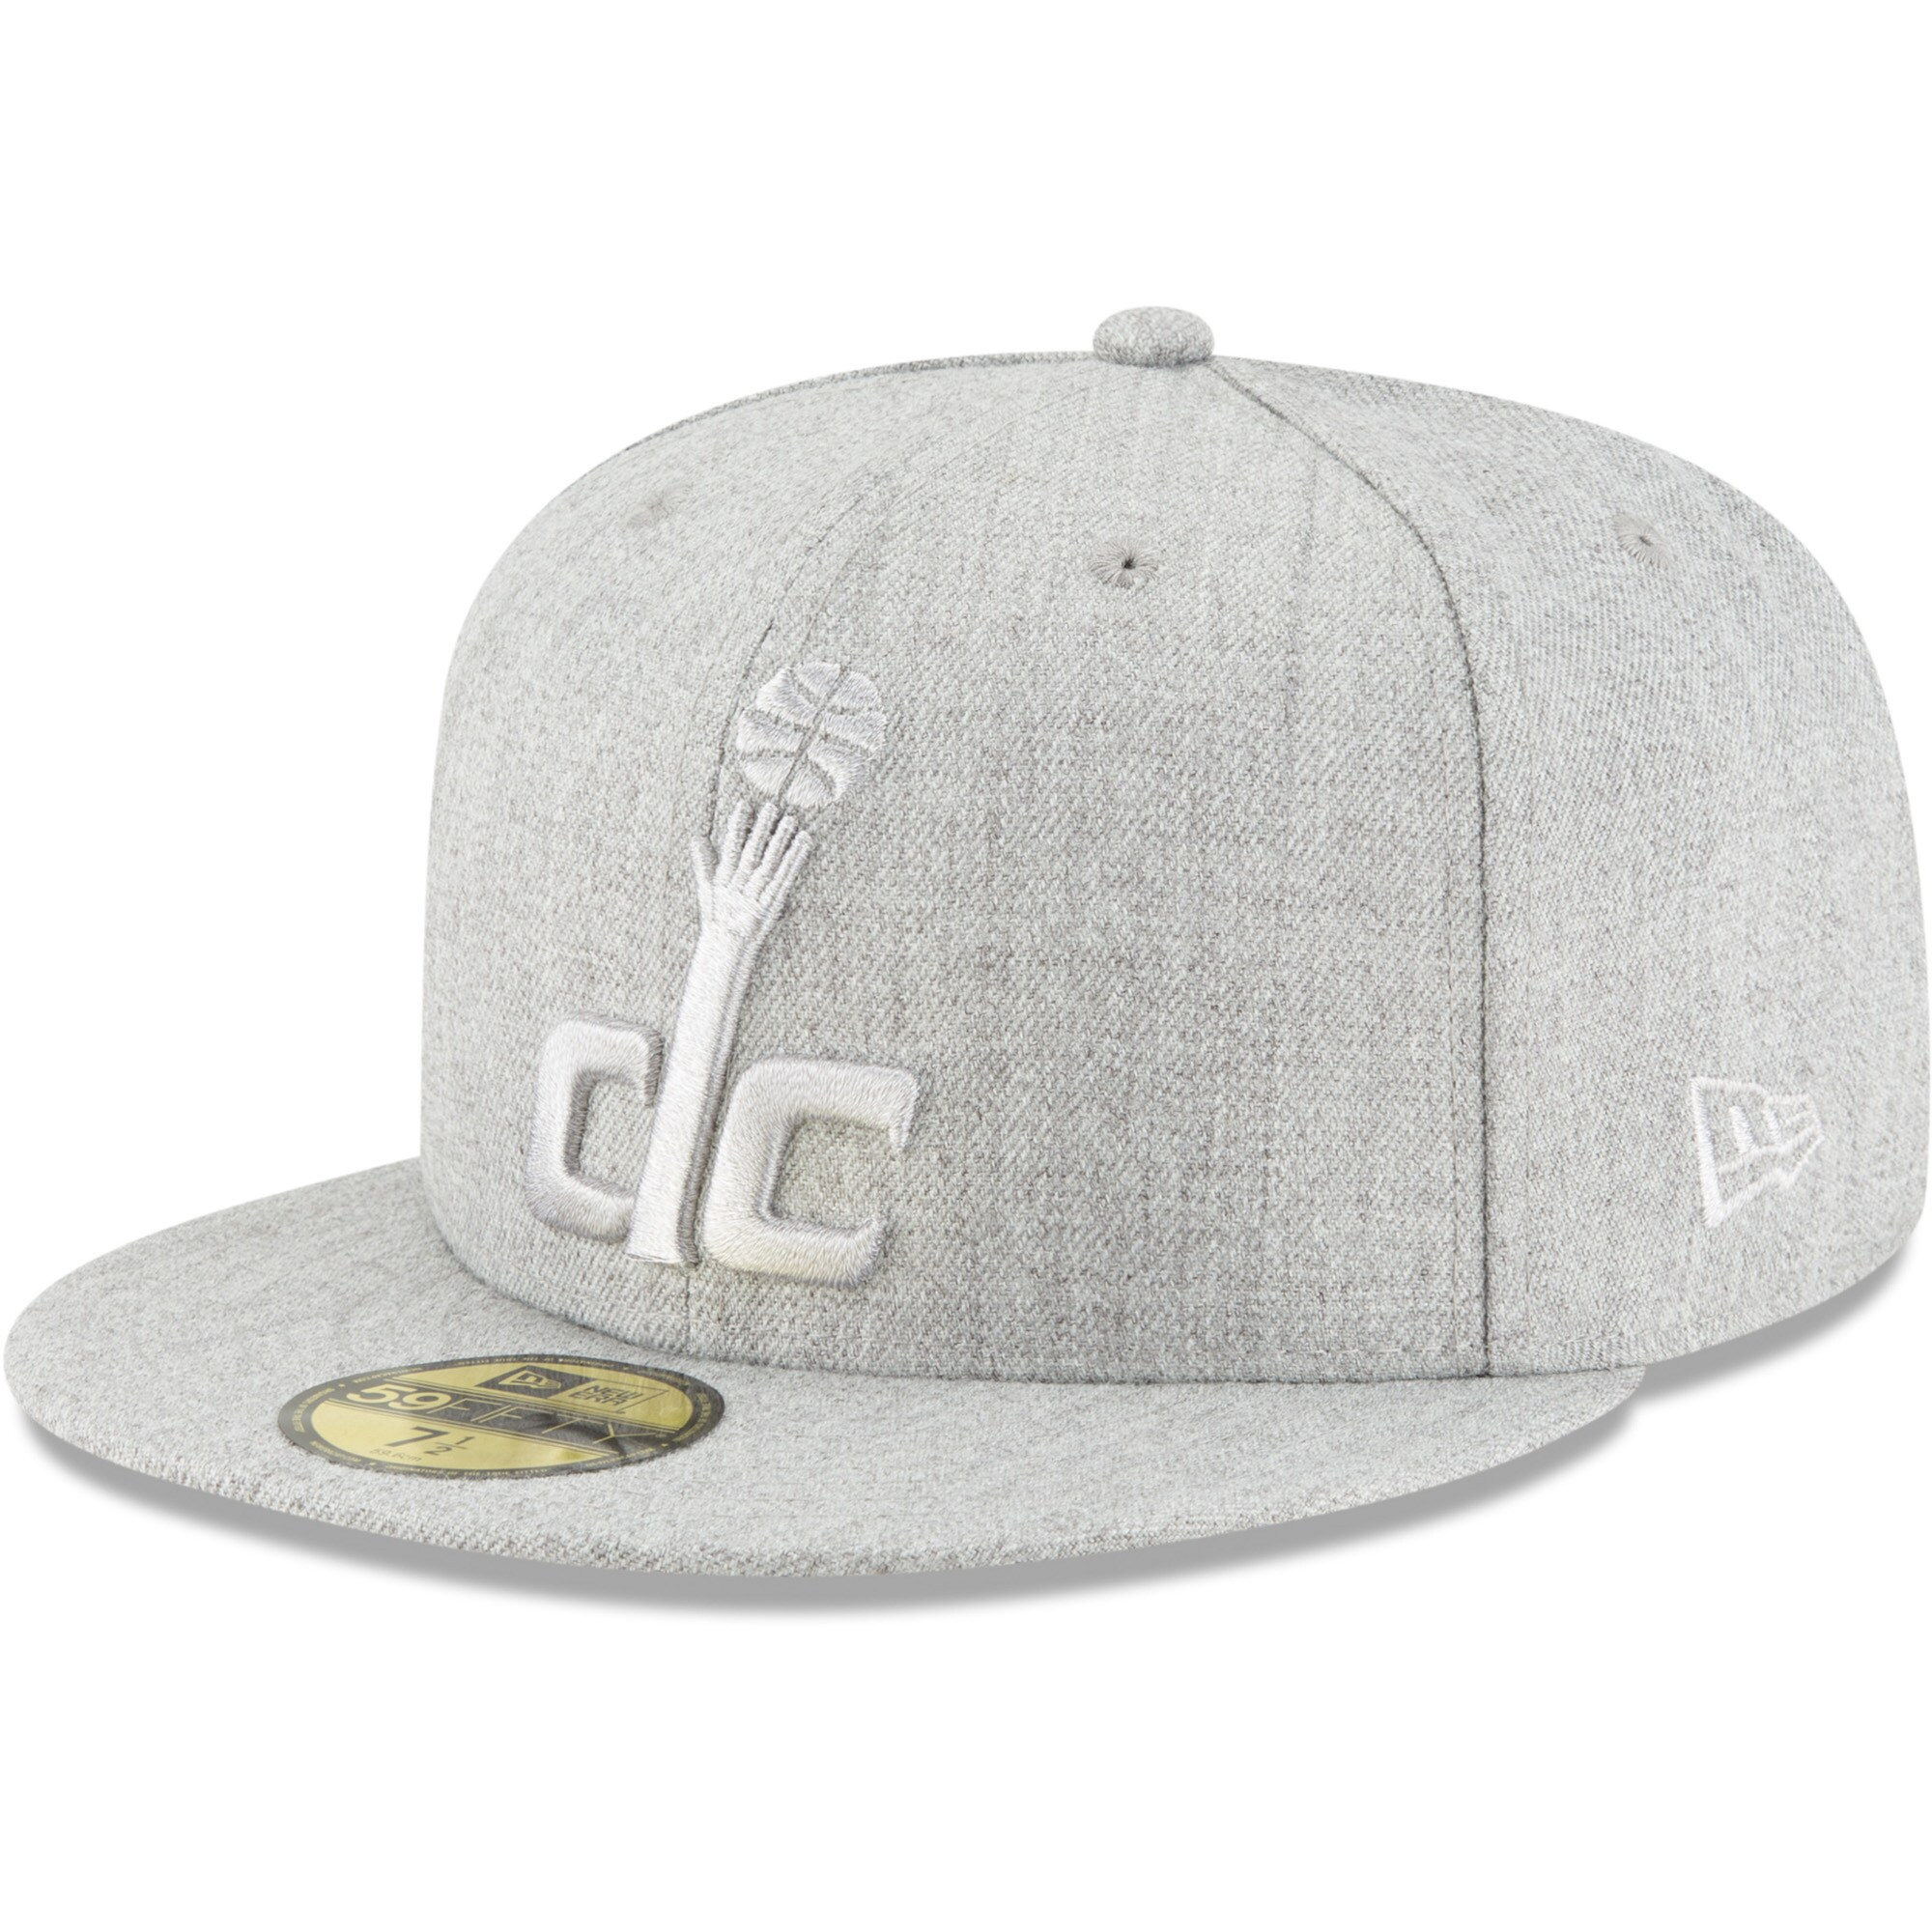 Washington Wizards New Era Twisted Frame 59FIFTY Fitted Hat - Gray